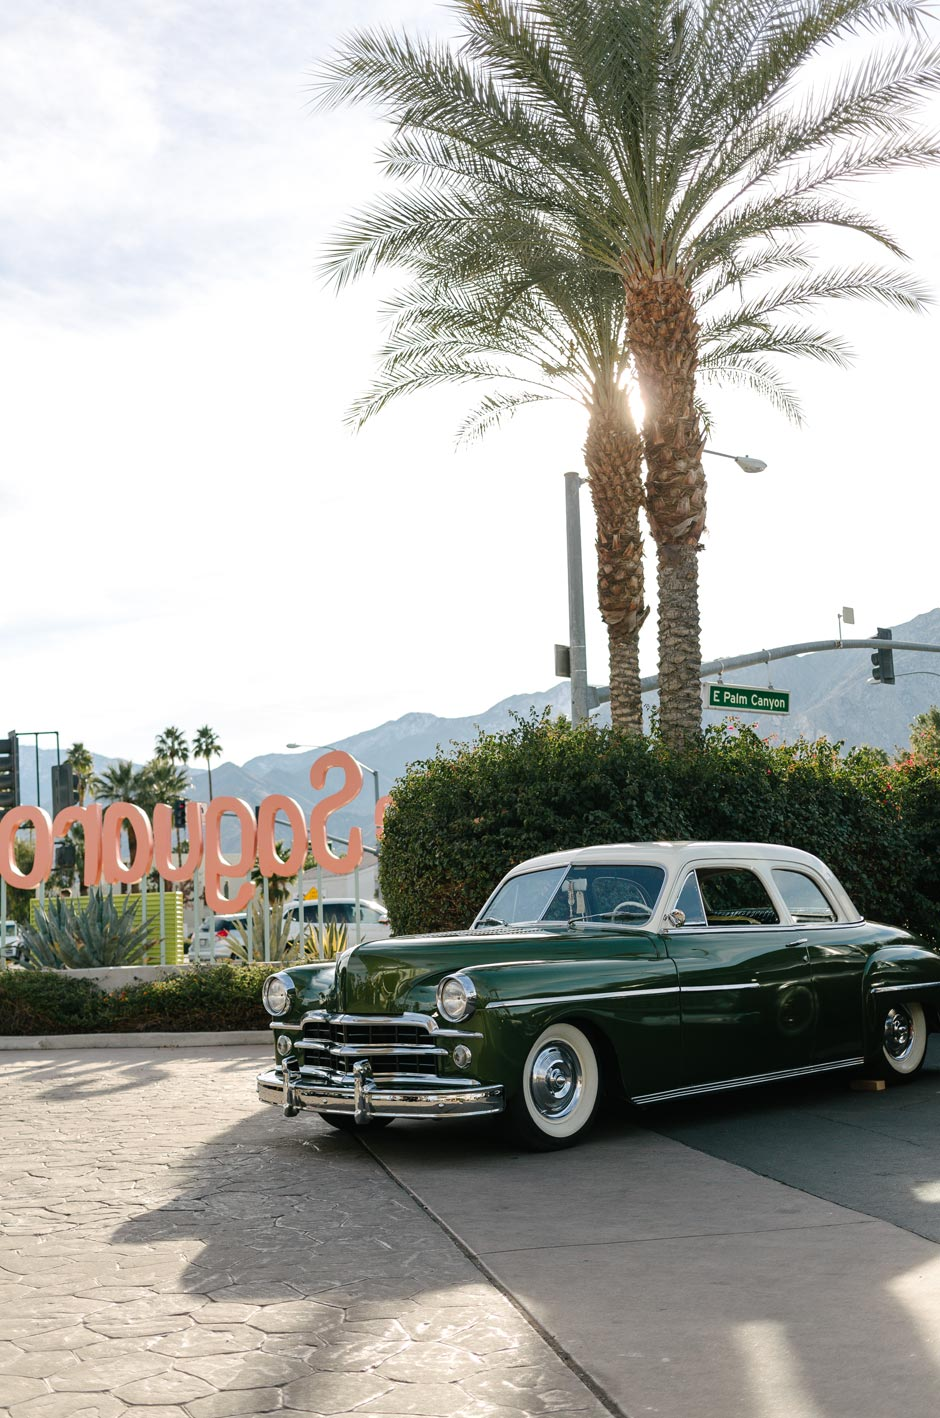 Paradise Roadshow 2020 - Vintage car with palm tree in the background